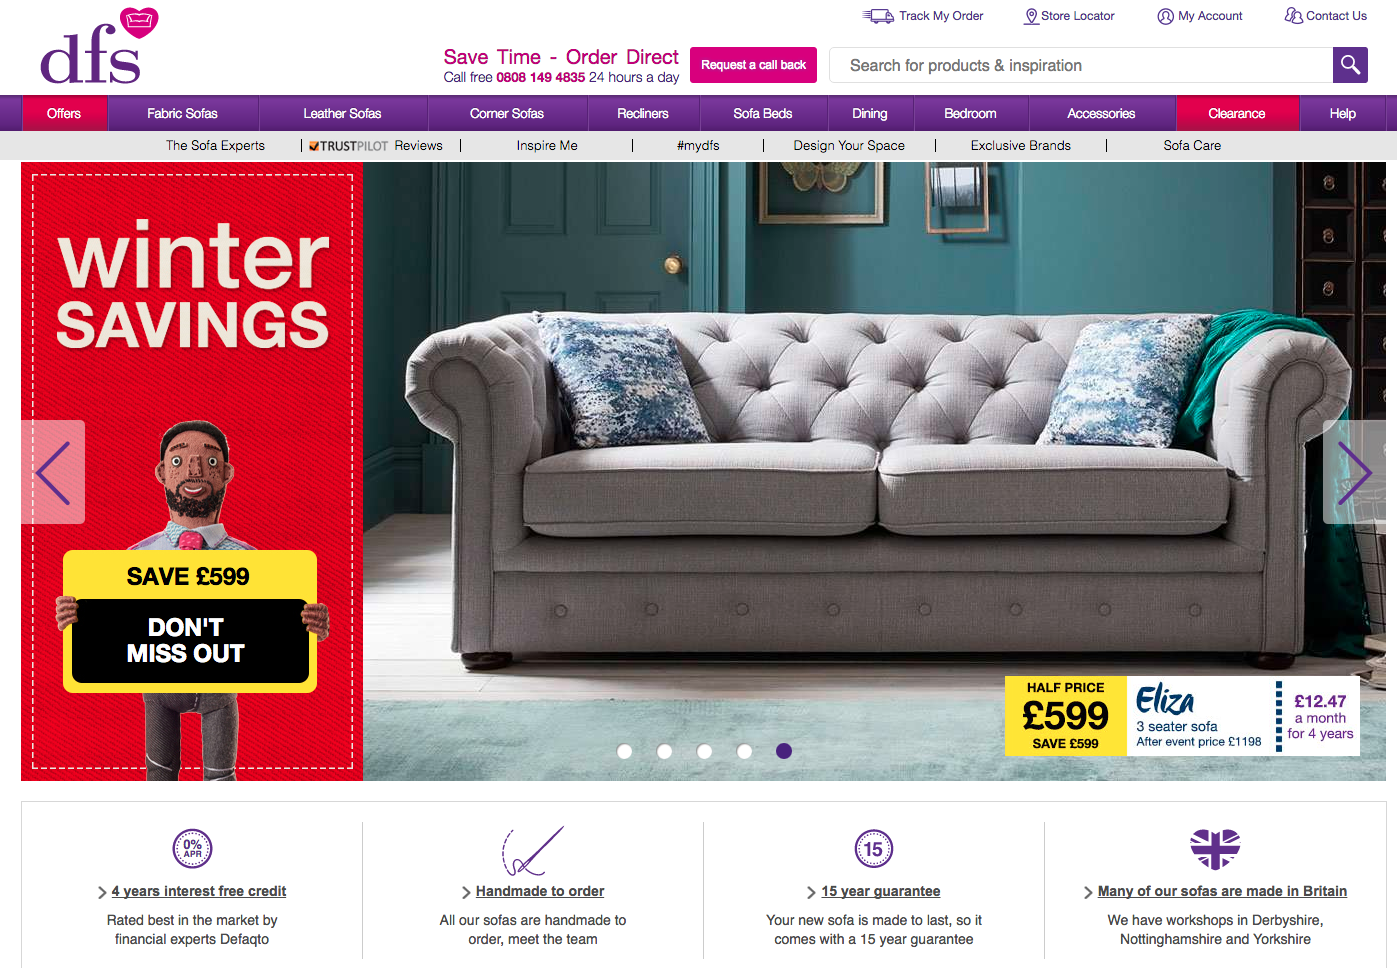 DFS homepage